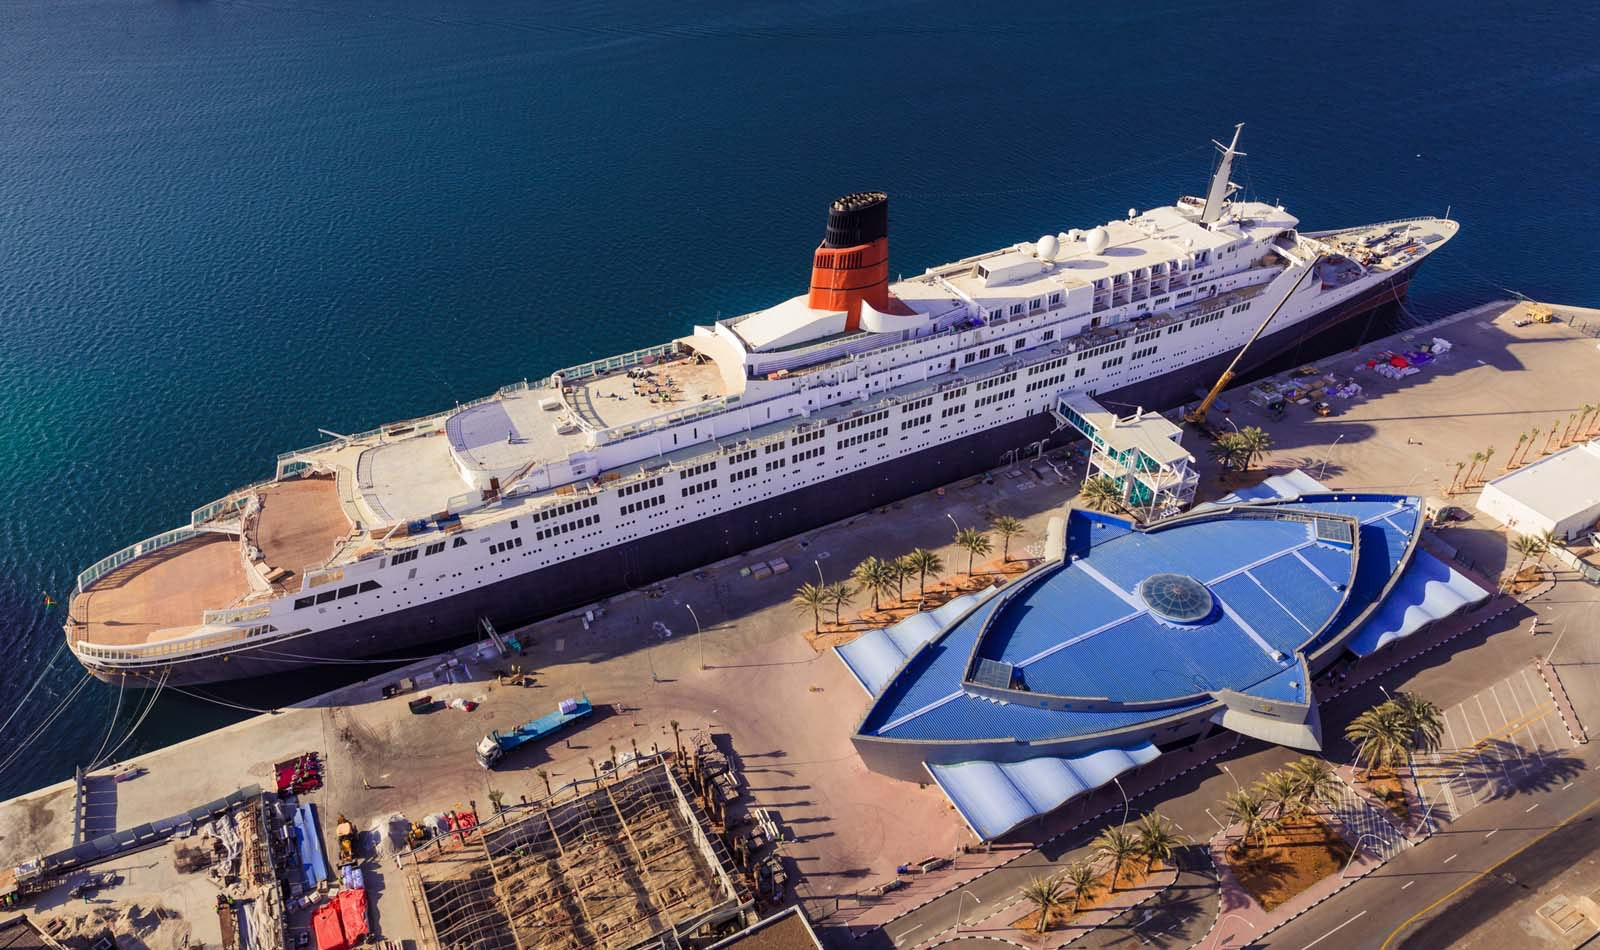 In its heyday, the QE2 accommodated some 1,900 passengers, served by 1,000 crew members.